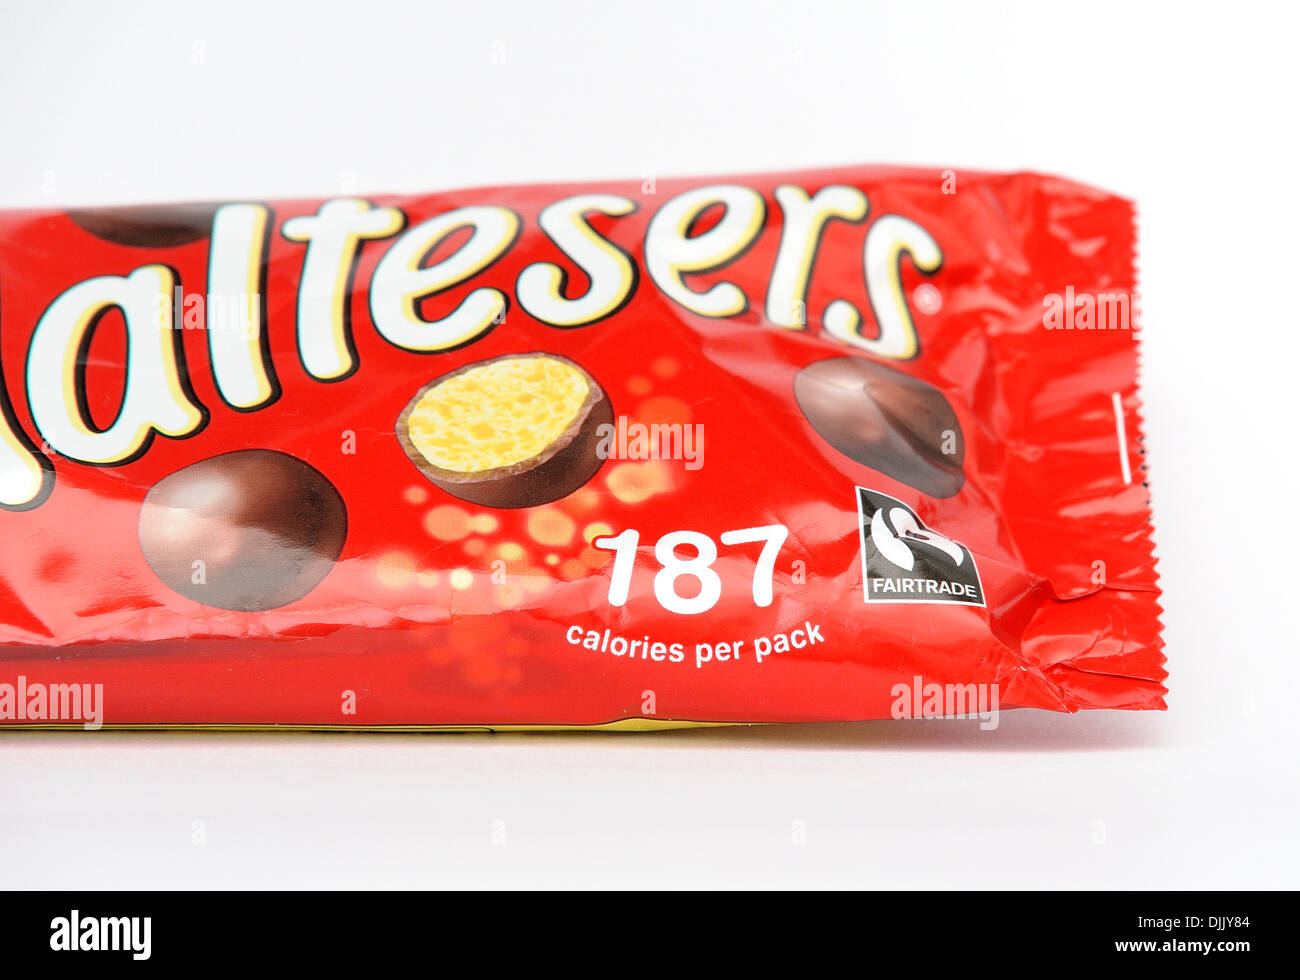 Paquet de maltesers Fairtrade 187 calories par paquet Photo Stock